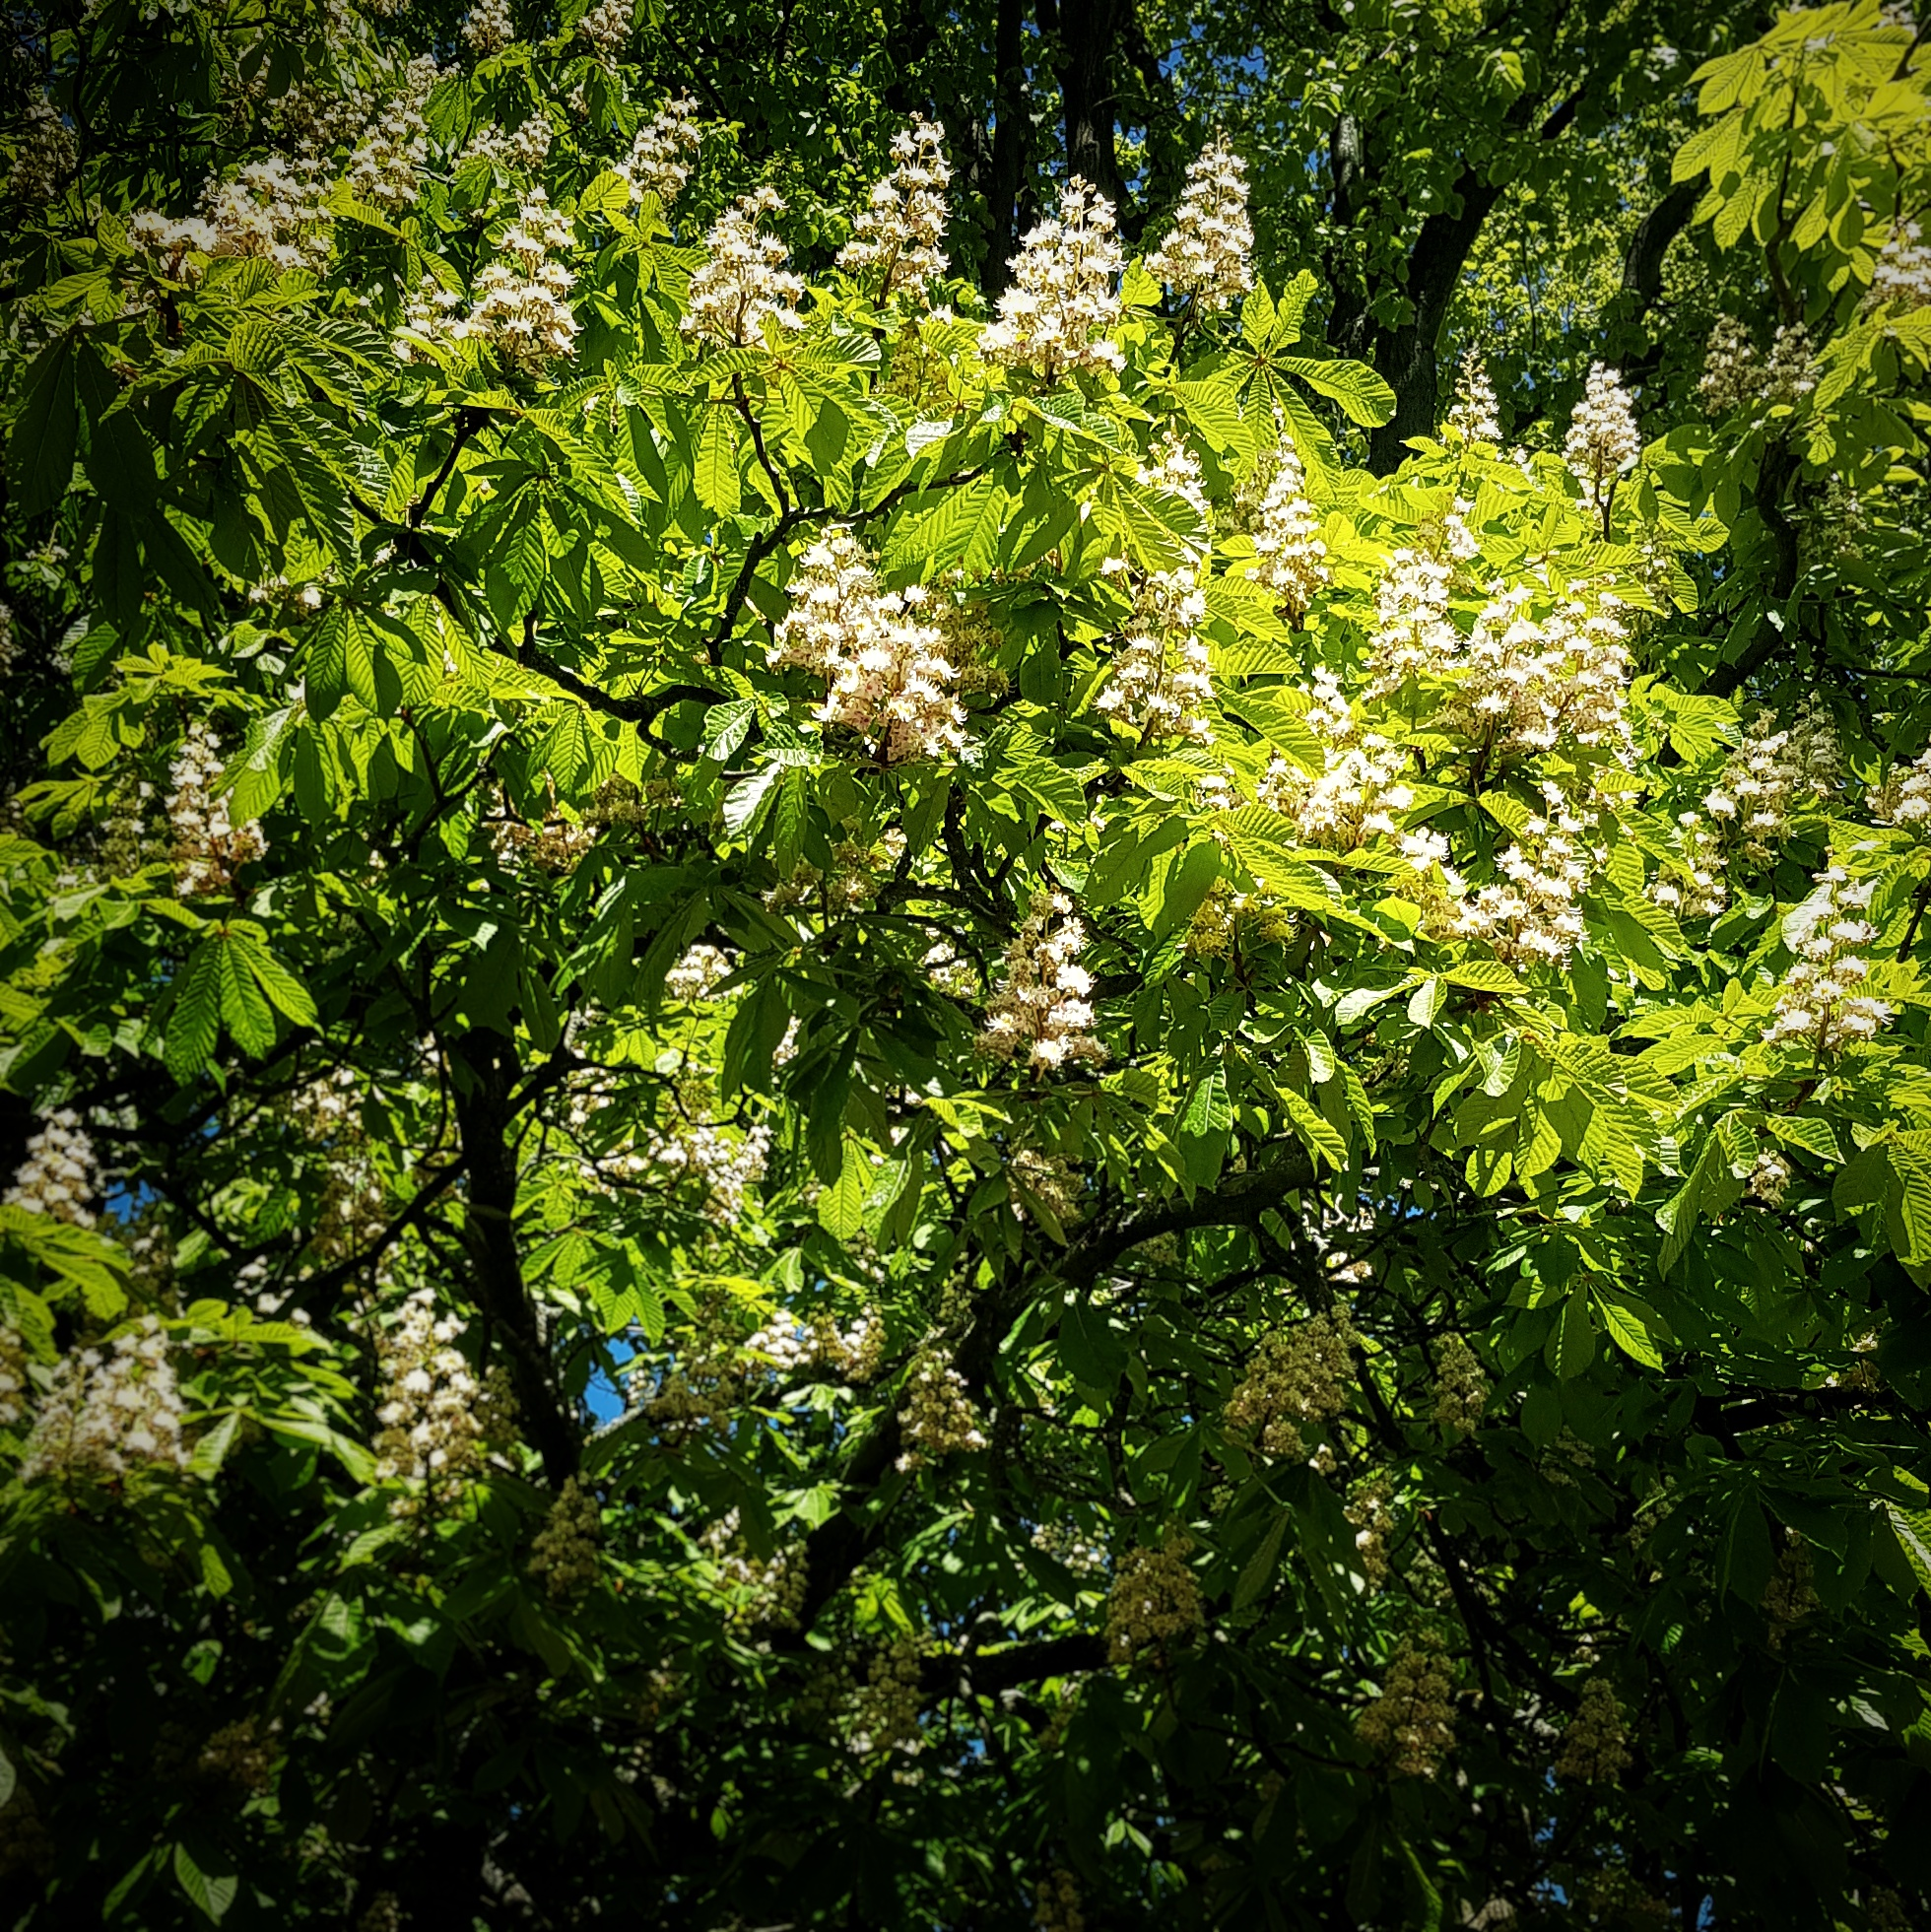 Day 131 - May 11: Chestnut in bloom